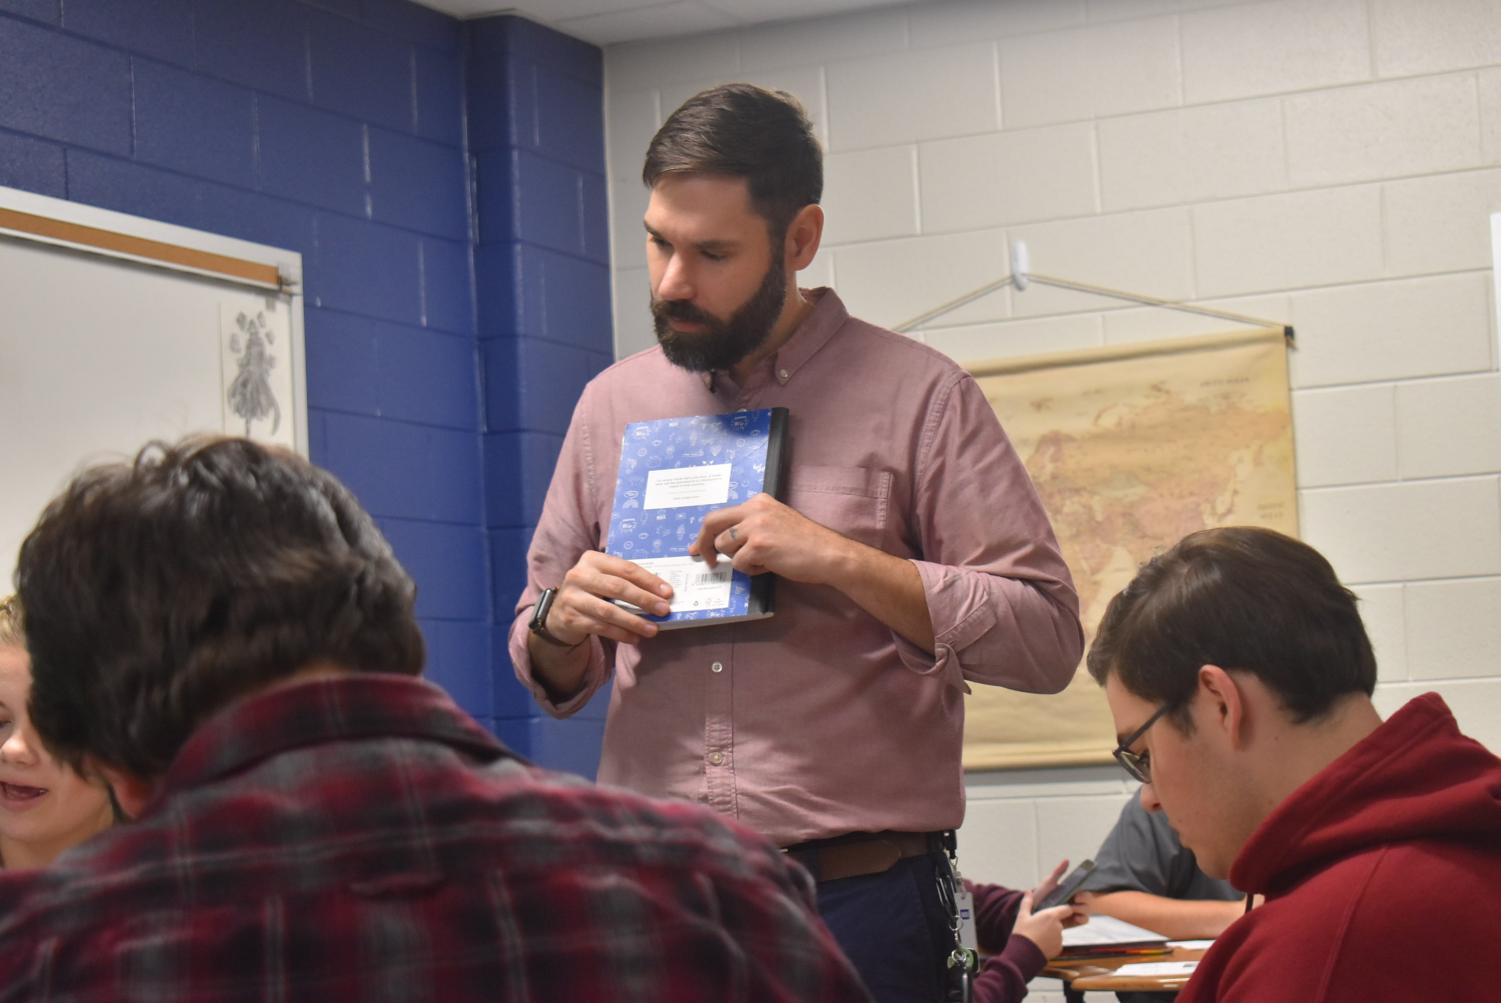 Steven Small is new to Scott County Schools this year and shares his passion for reading with his English students.